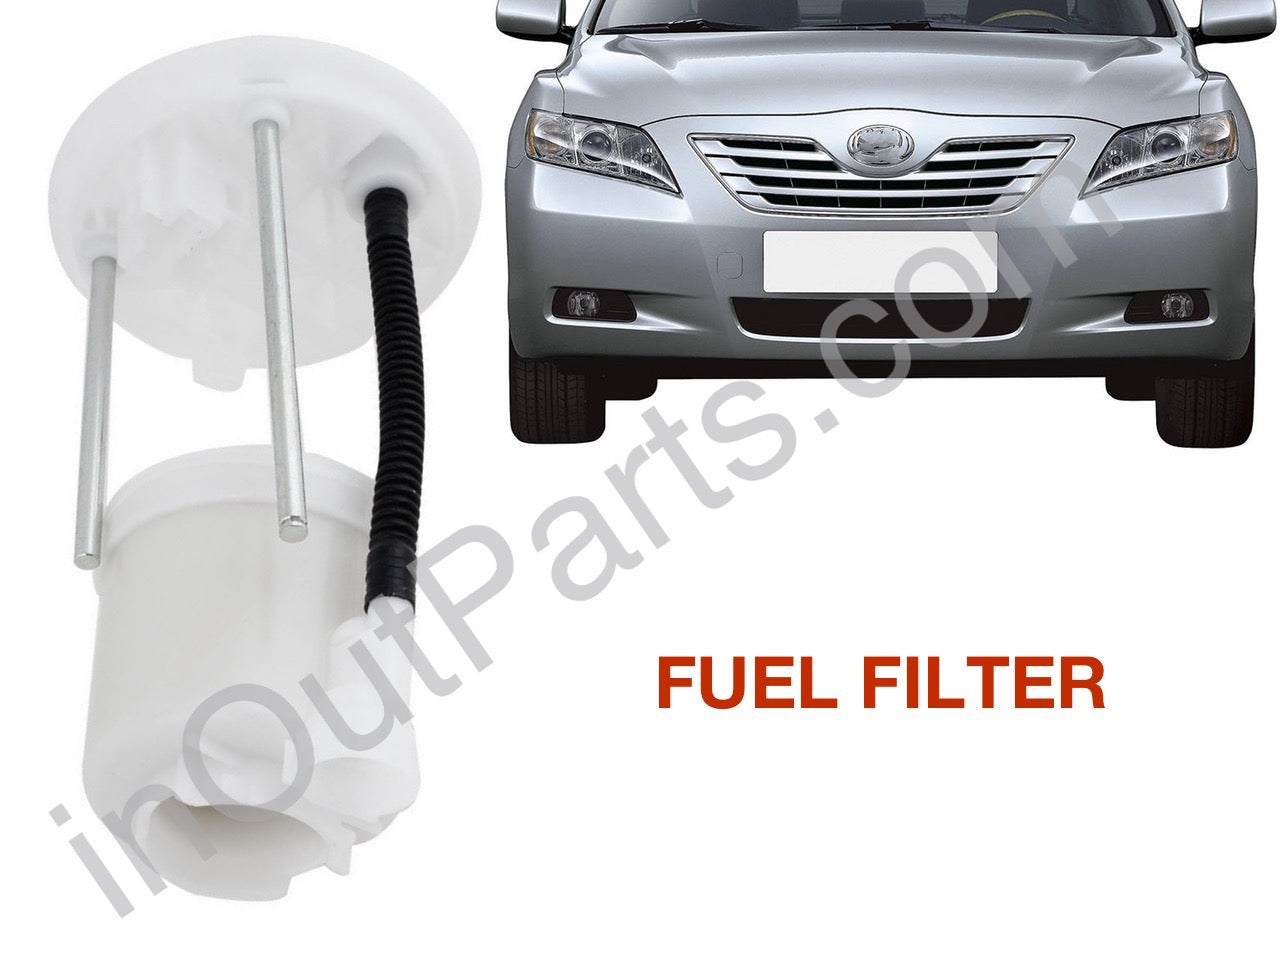 Toyota Fuel Filter 2007 Yaris Wiring Diagrams Camry 2azfe 2006 2008 2009 2010 2011 2012